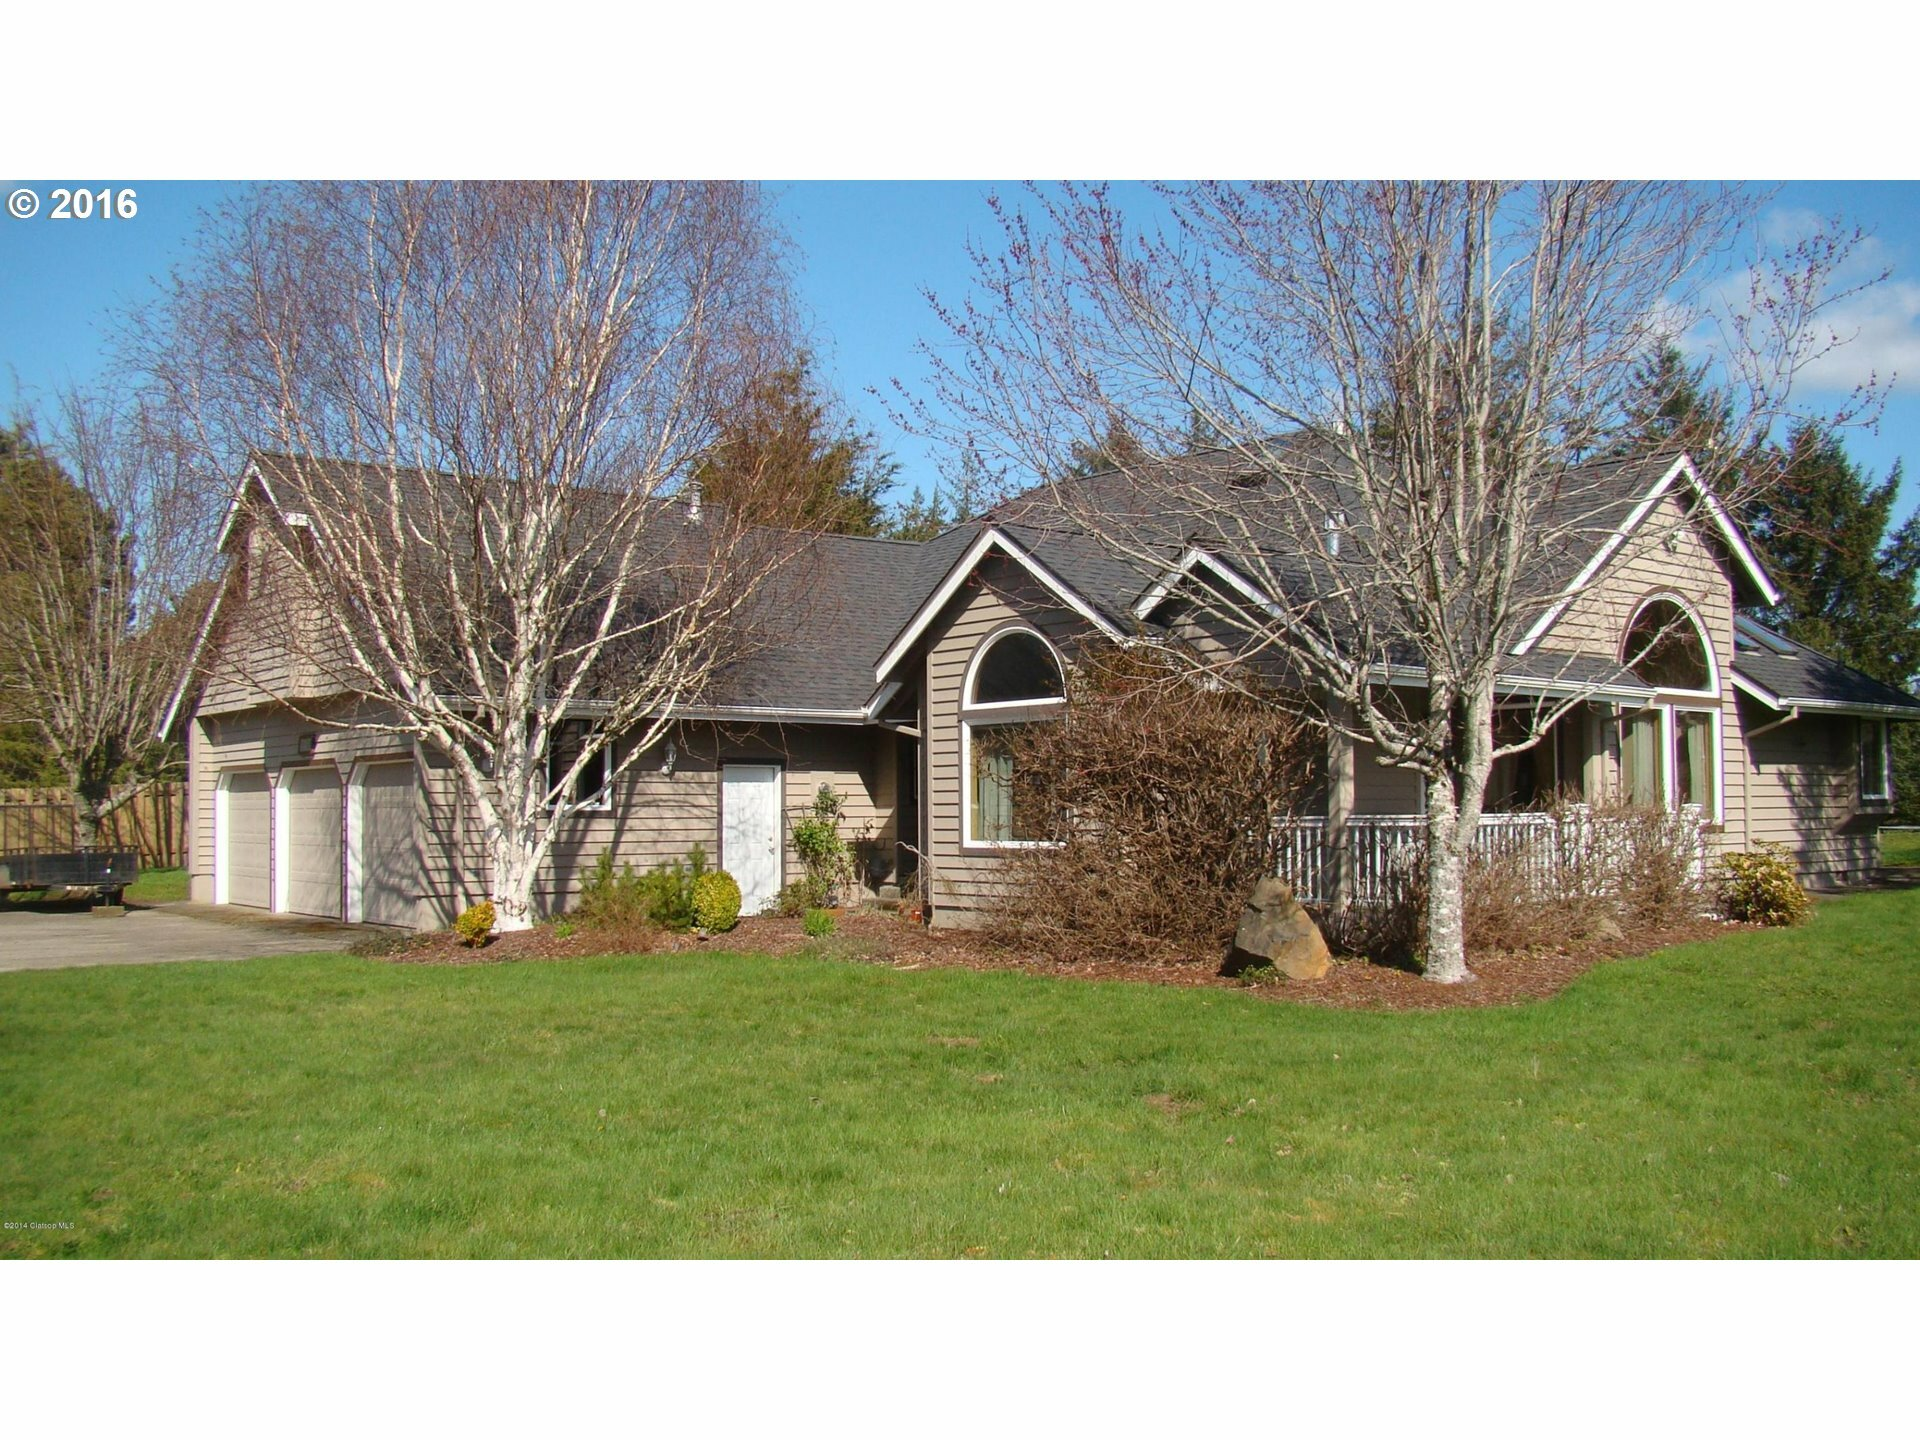 33565 Willow Pond Ln, Gearhart, OR - USA (photo 1)